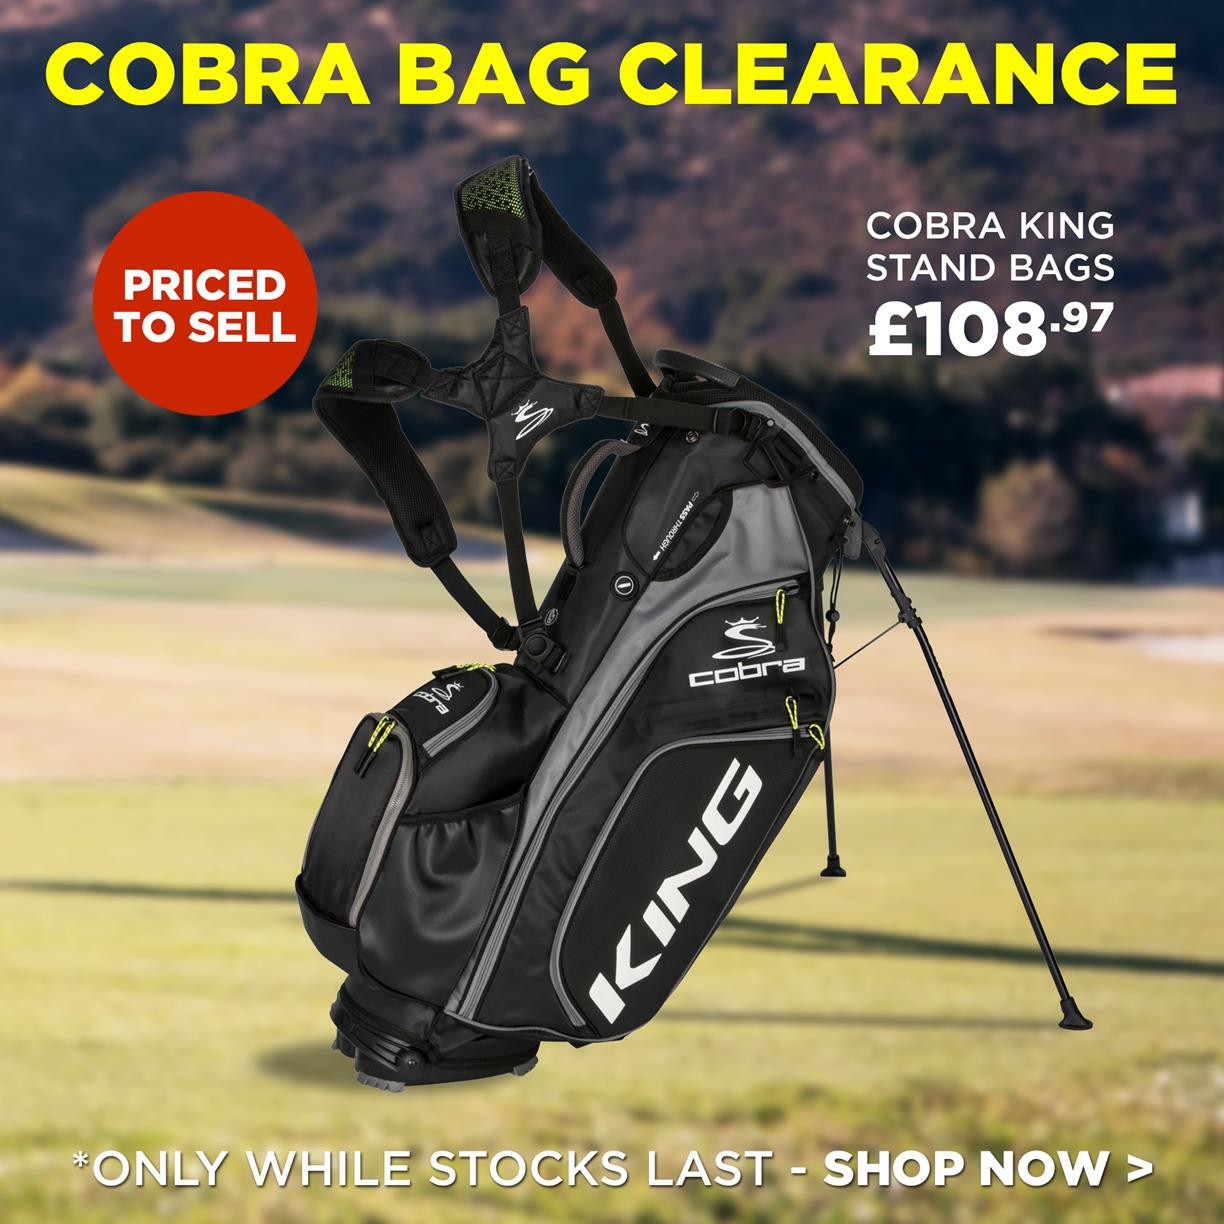 Golf Support Cobra King Stand Bags Clearance New Stock